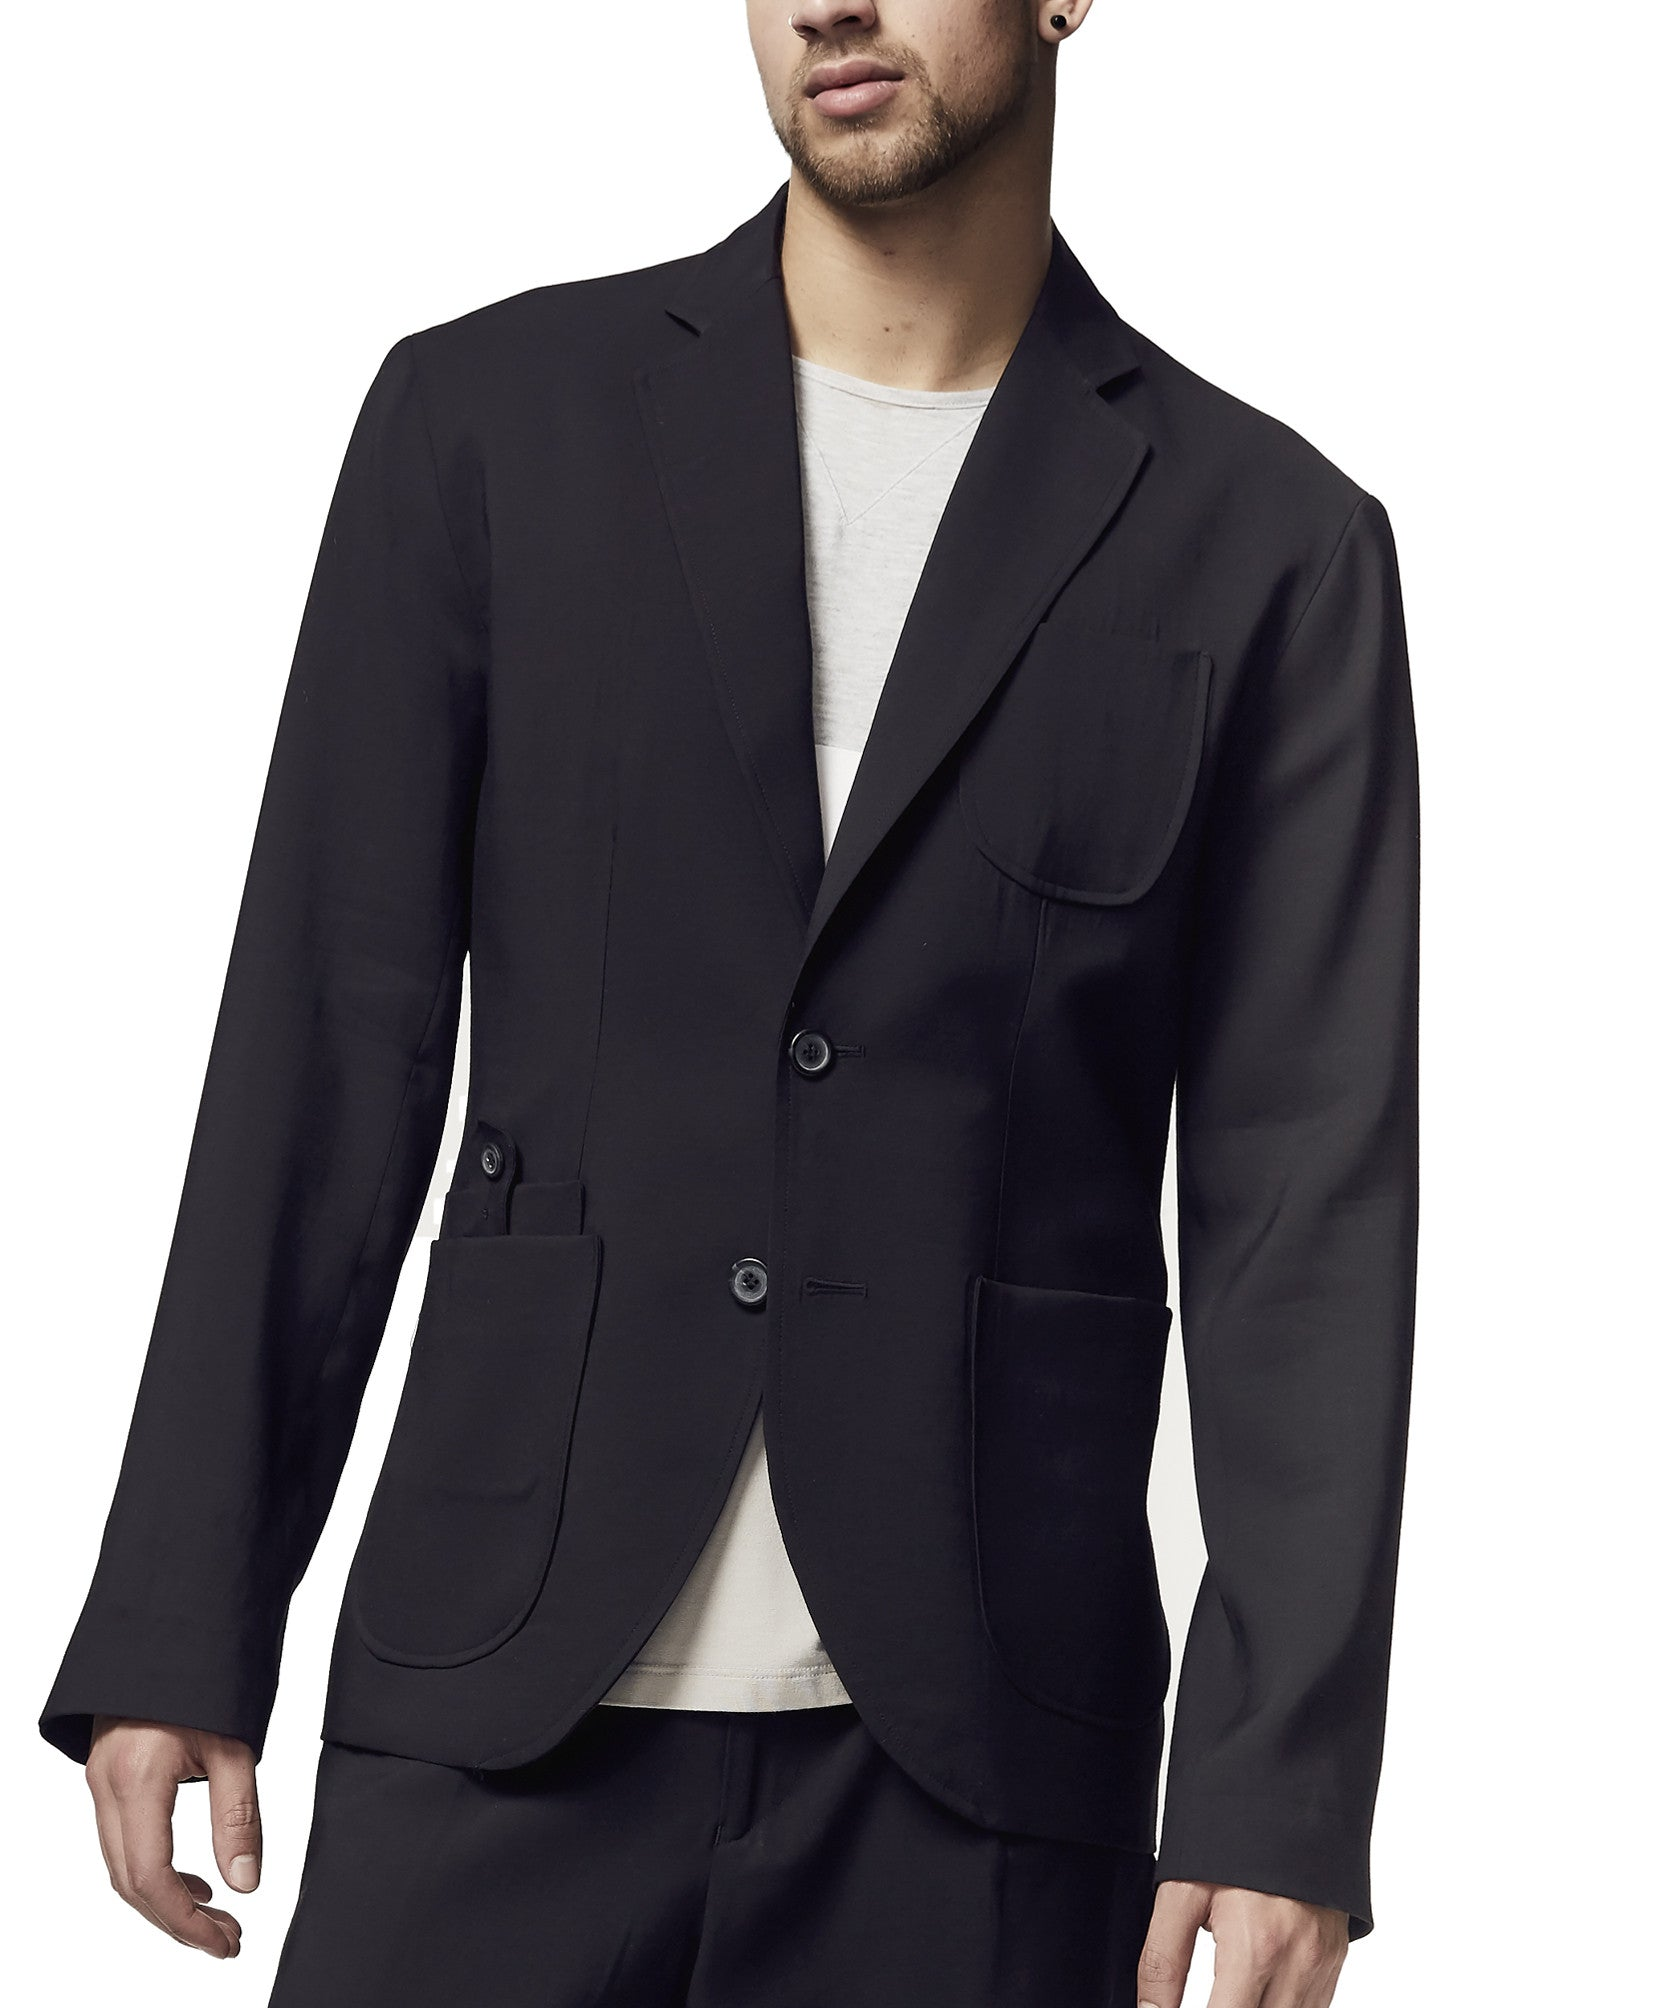 Men's black Tencel/Linen tie back blazer S/S18